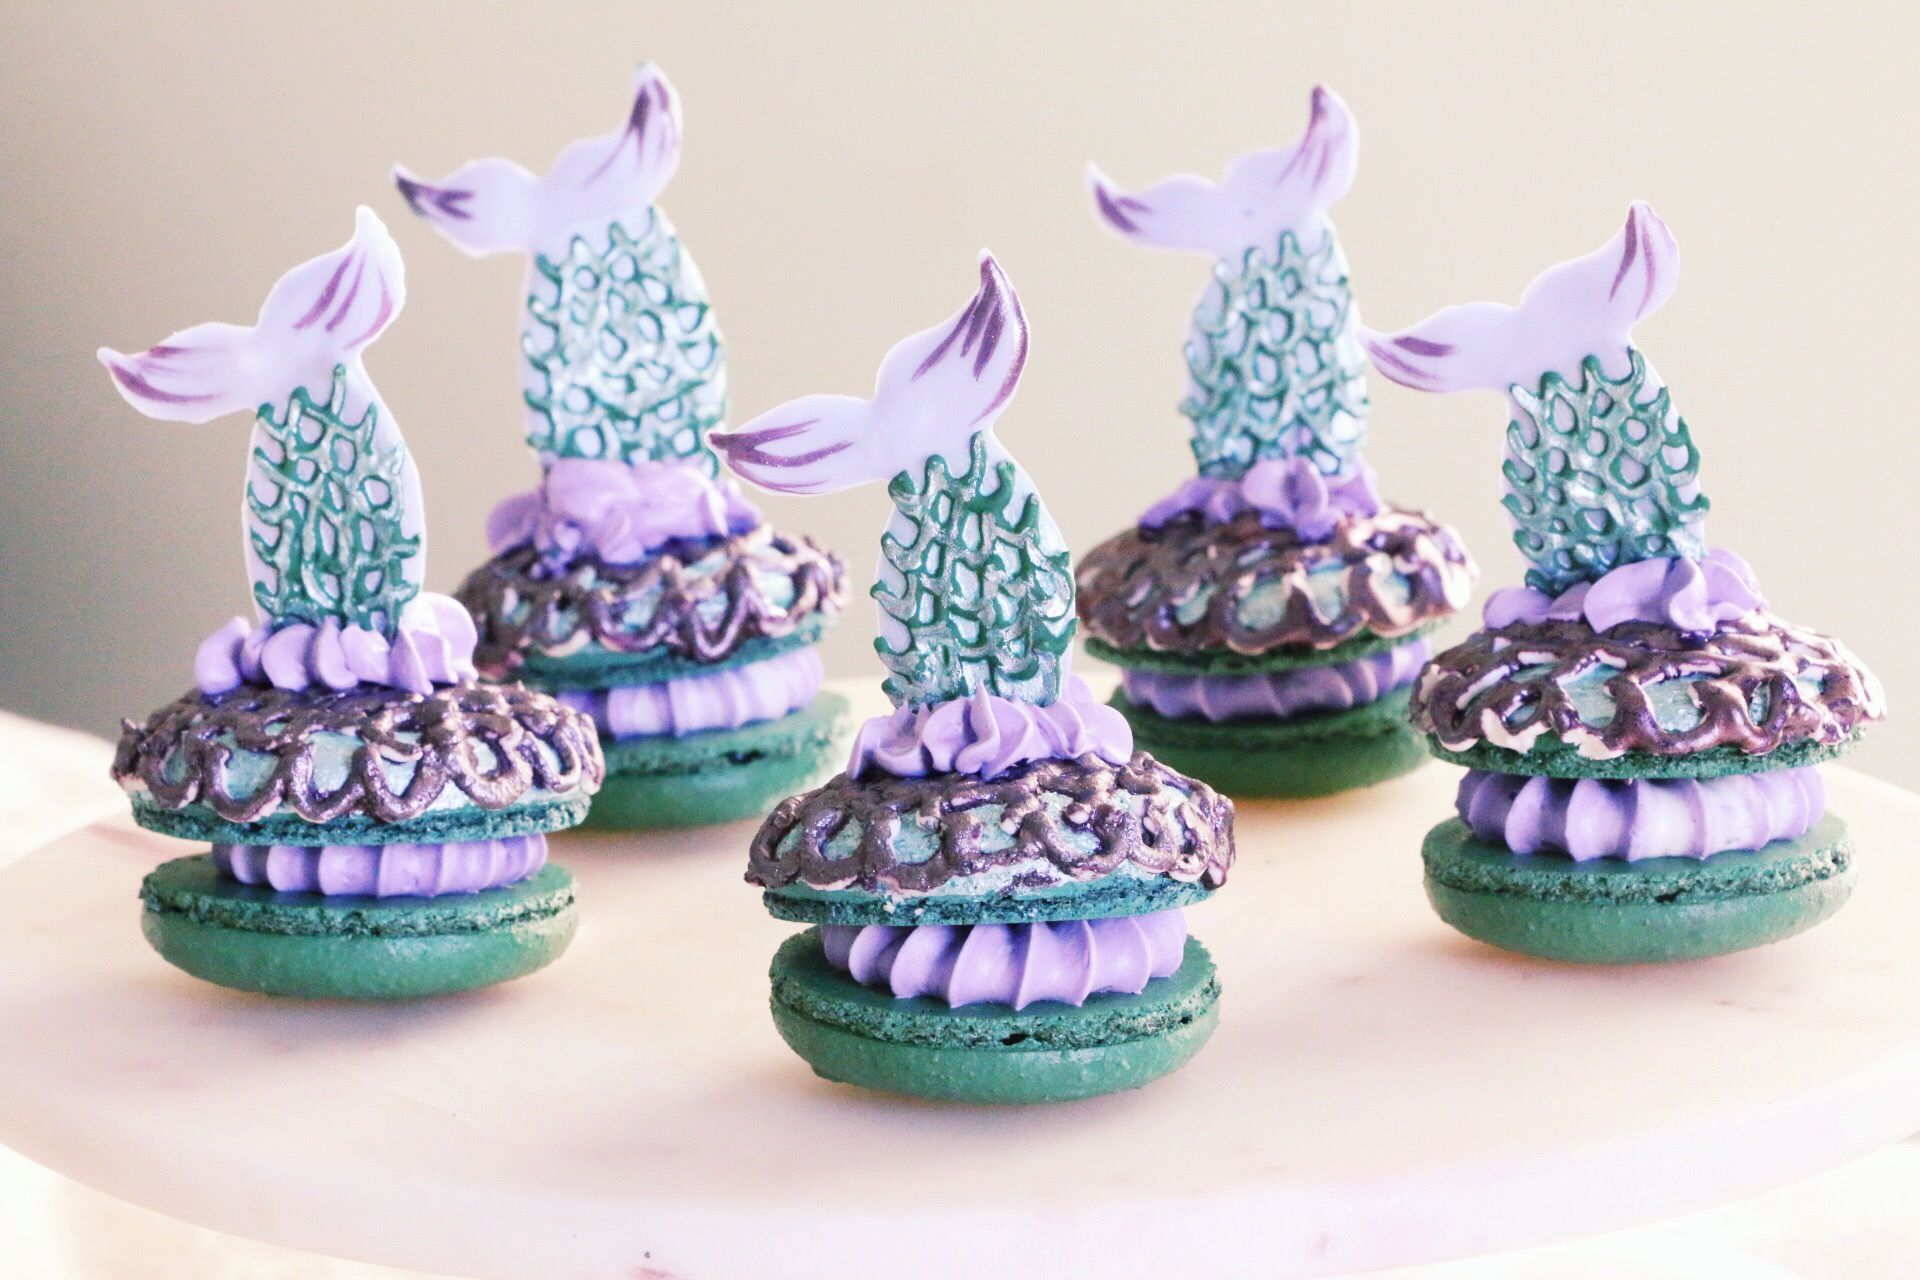 This Mermaid Macaron Video Is the Mesmerizing Distraction Your Day Needs